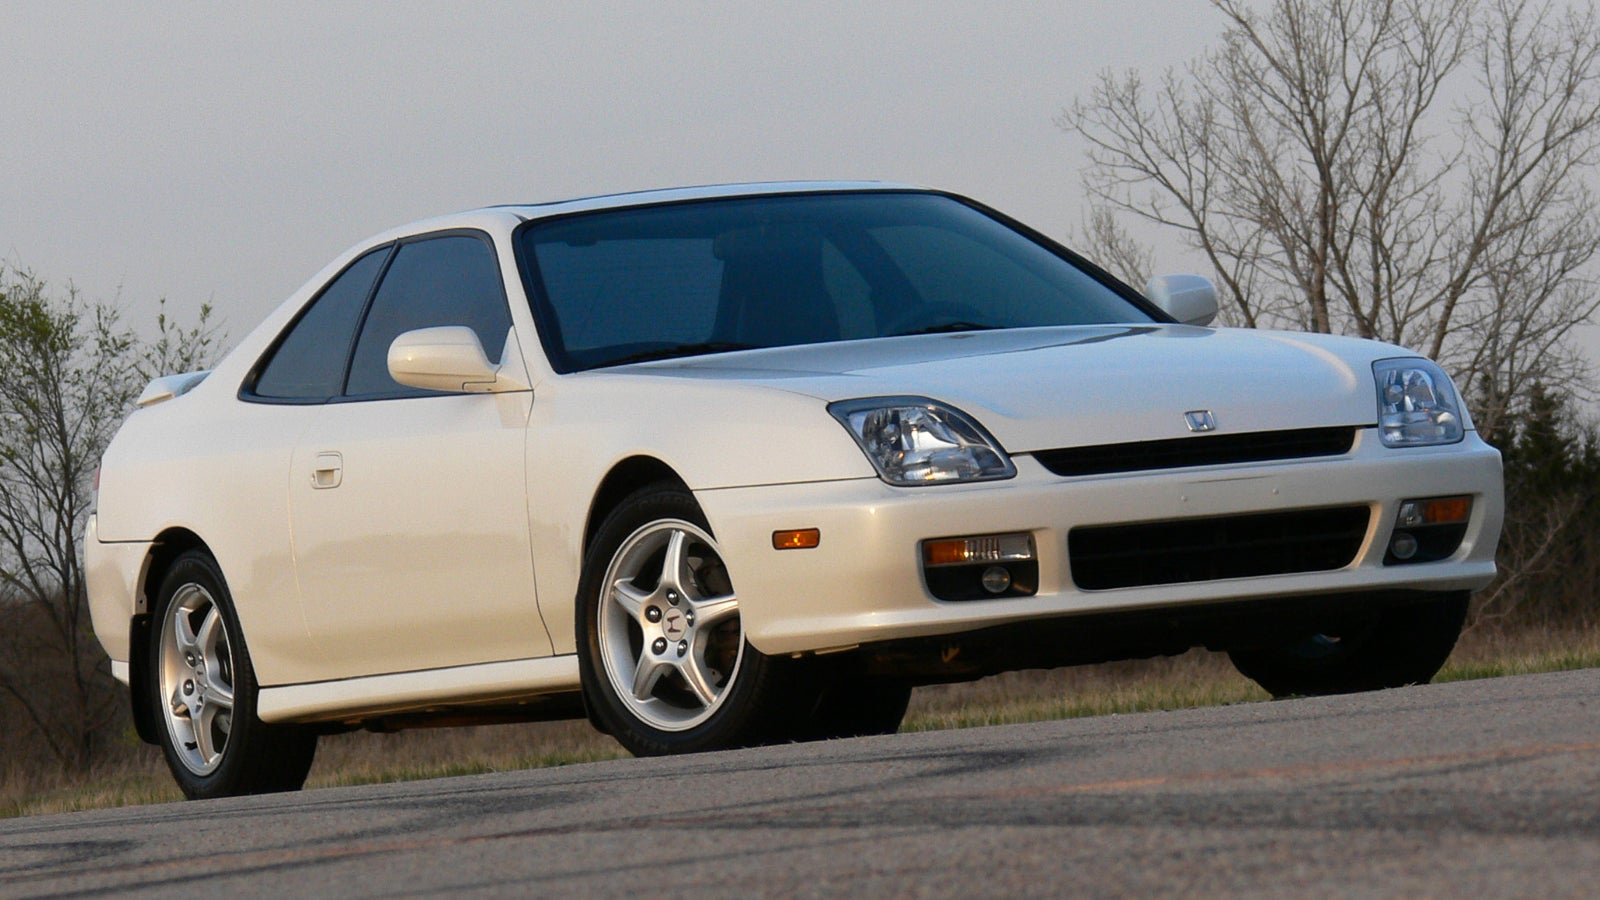 here s what a prime honda prelude is worth today rh jalopnik com 98 honda prelude parts 98 honda prelude transmission